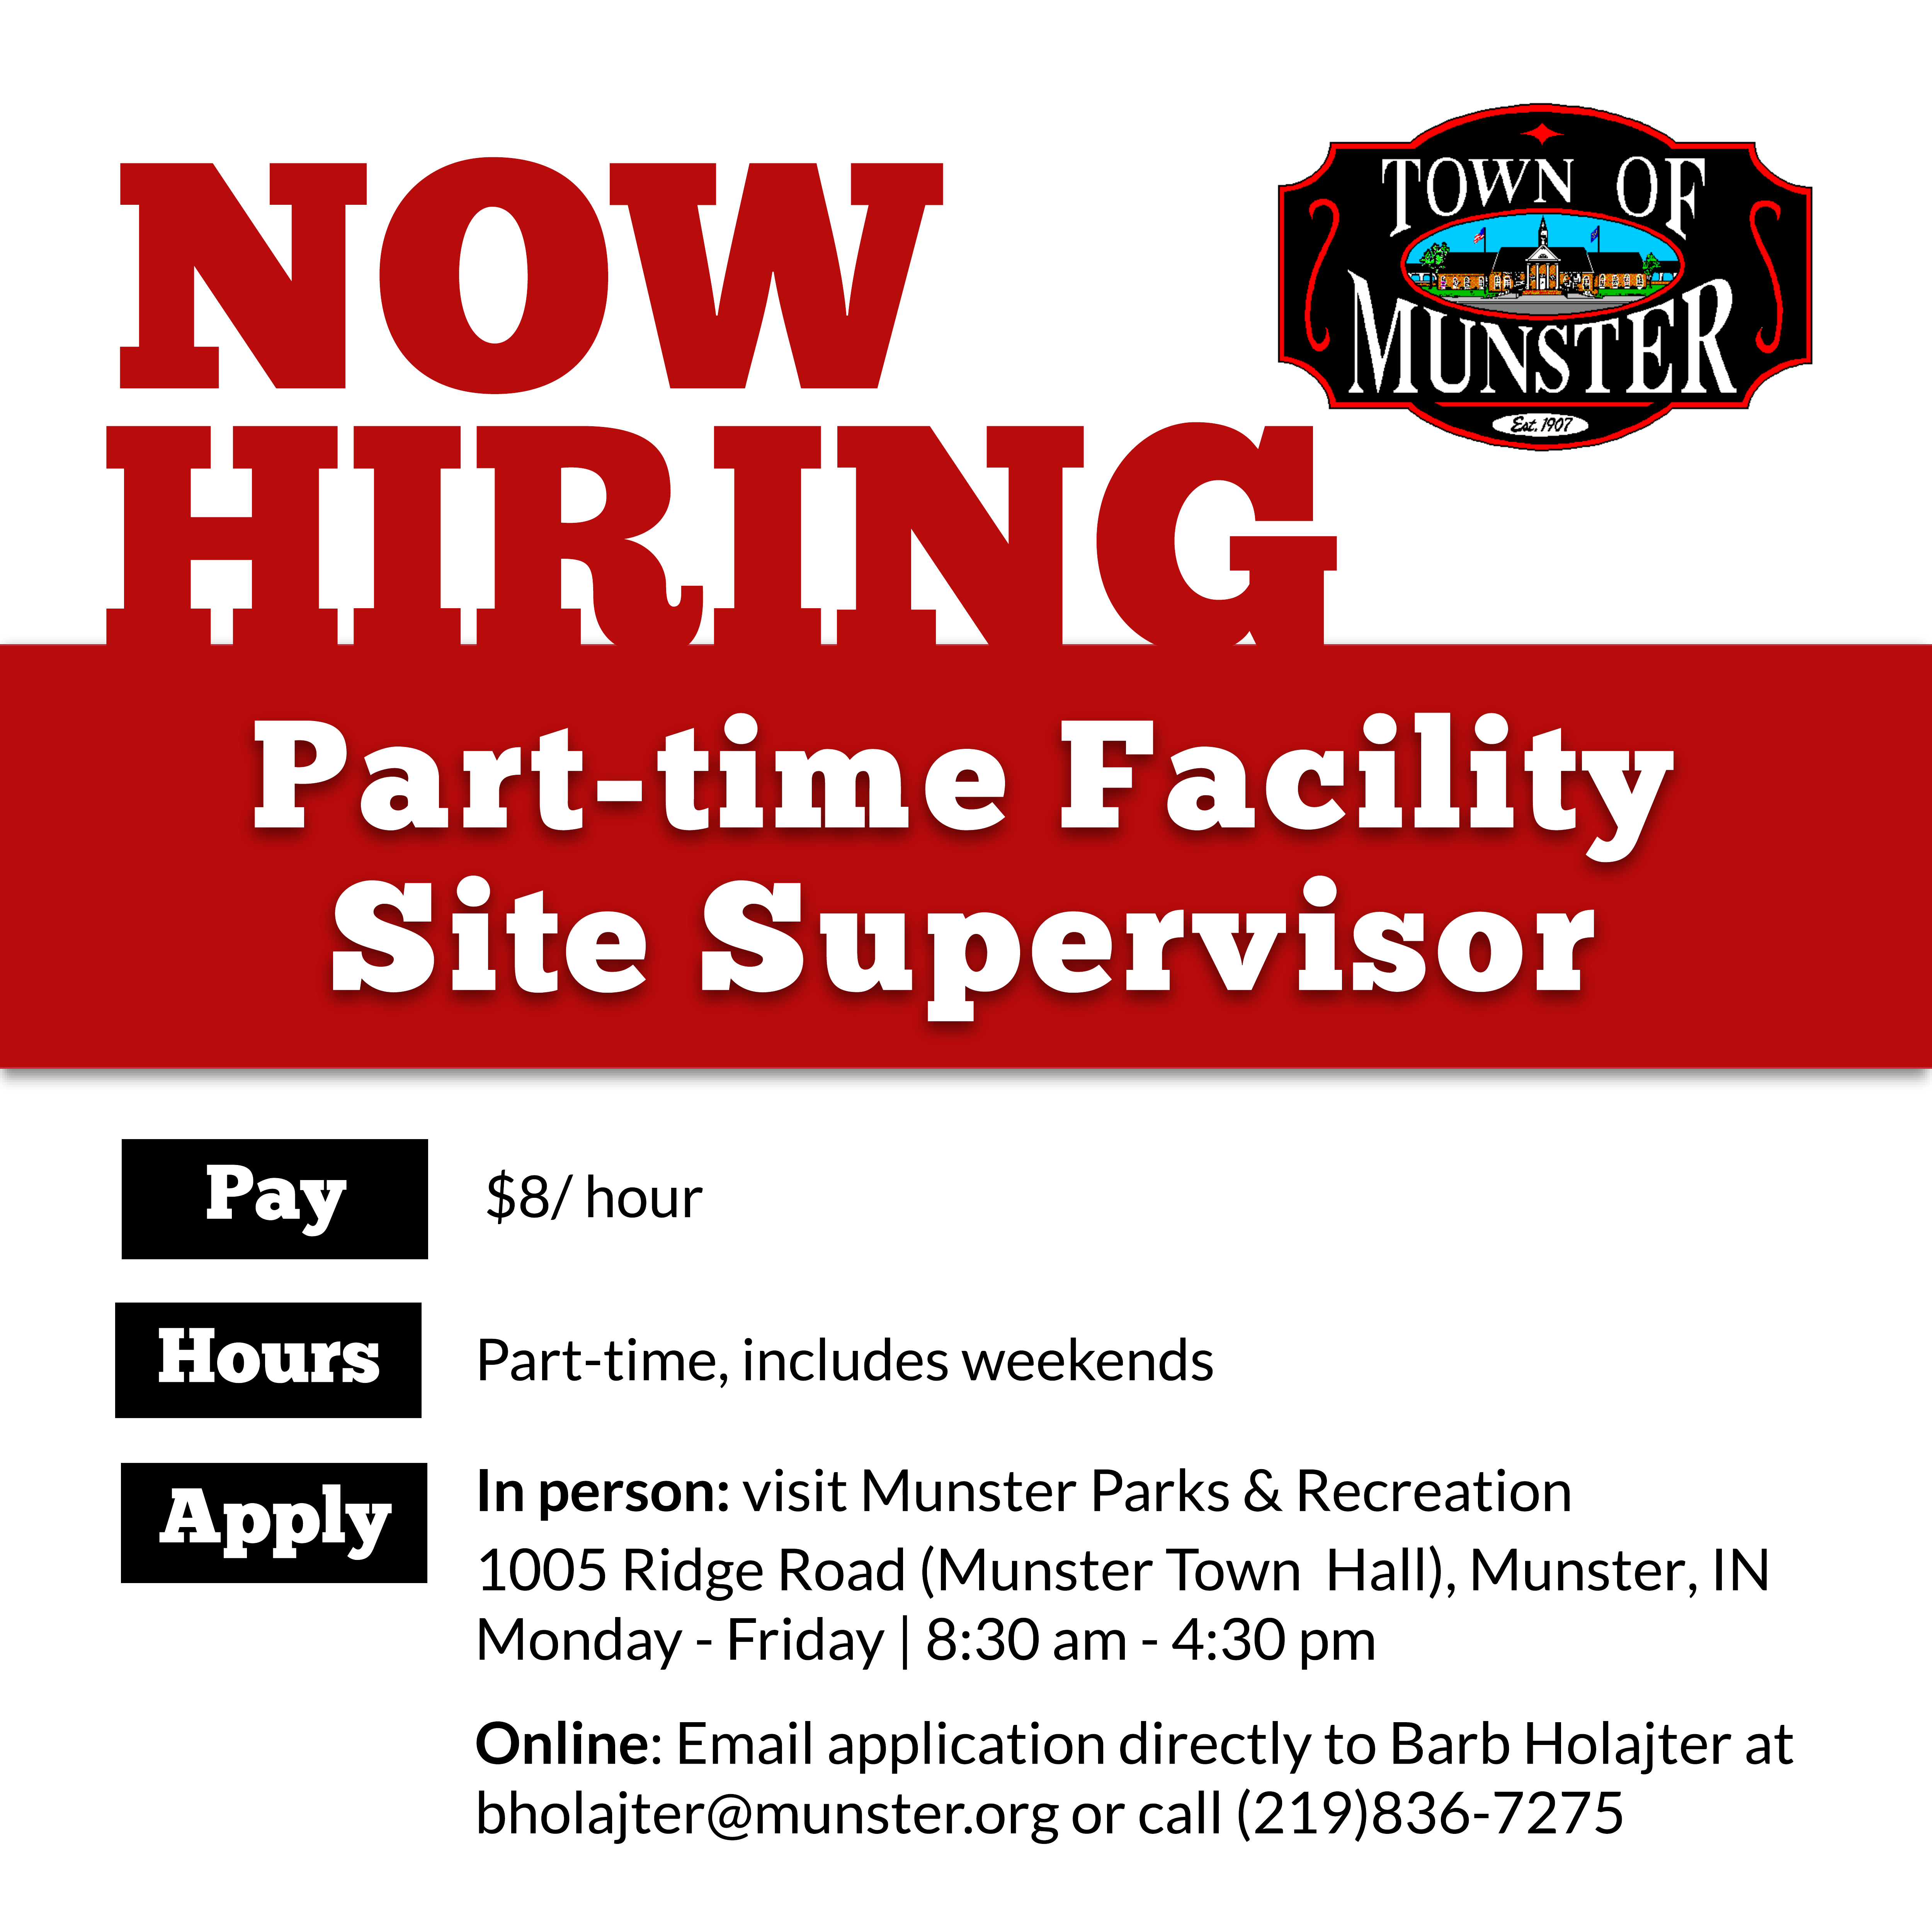 Image for news story: Now Hiring: Part-time Facility Site Supervisor